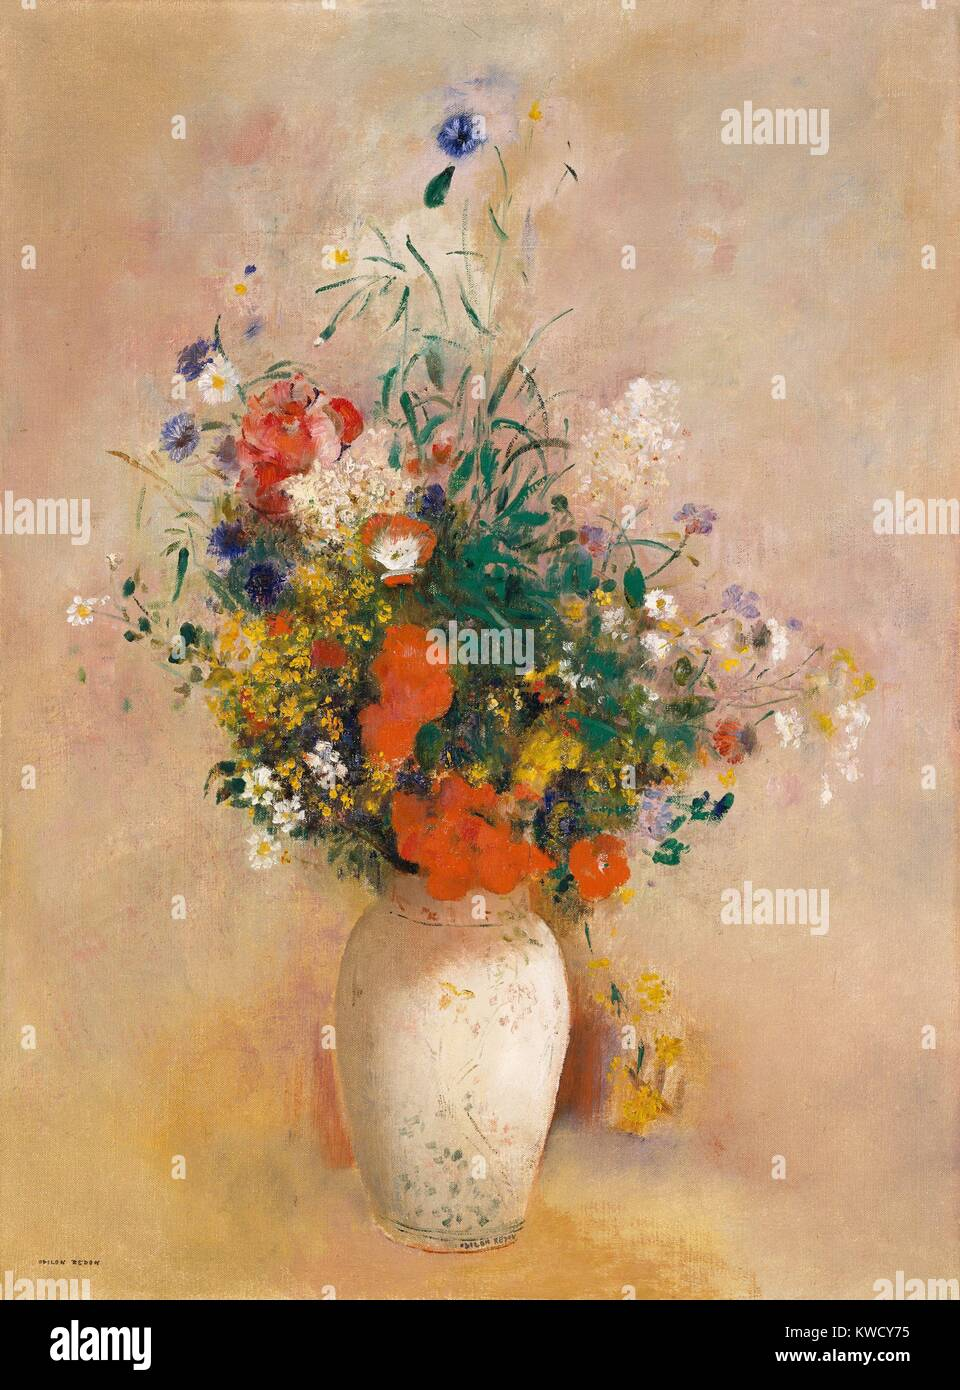 Vase of Flowers (Pink Background), by Odilon Redon, 1906, French Symbolist painting, oil on canvas. Redon painted Stock Photo